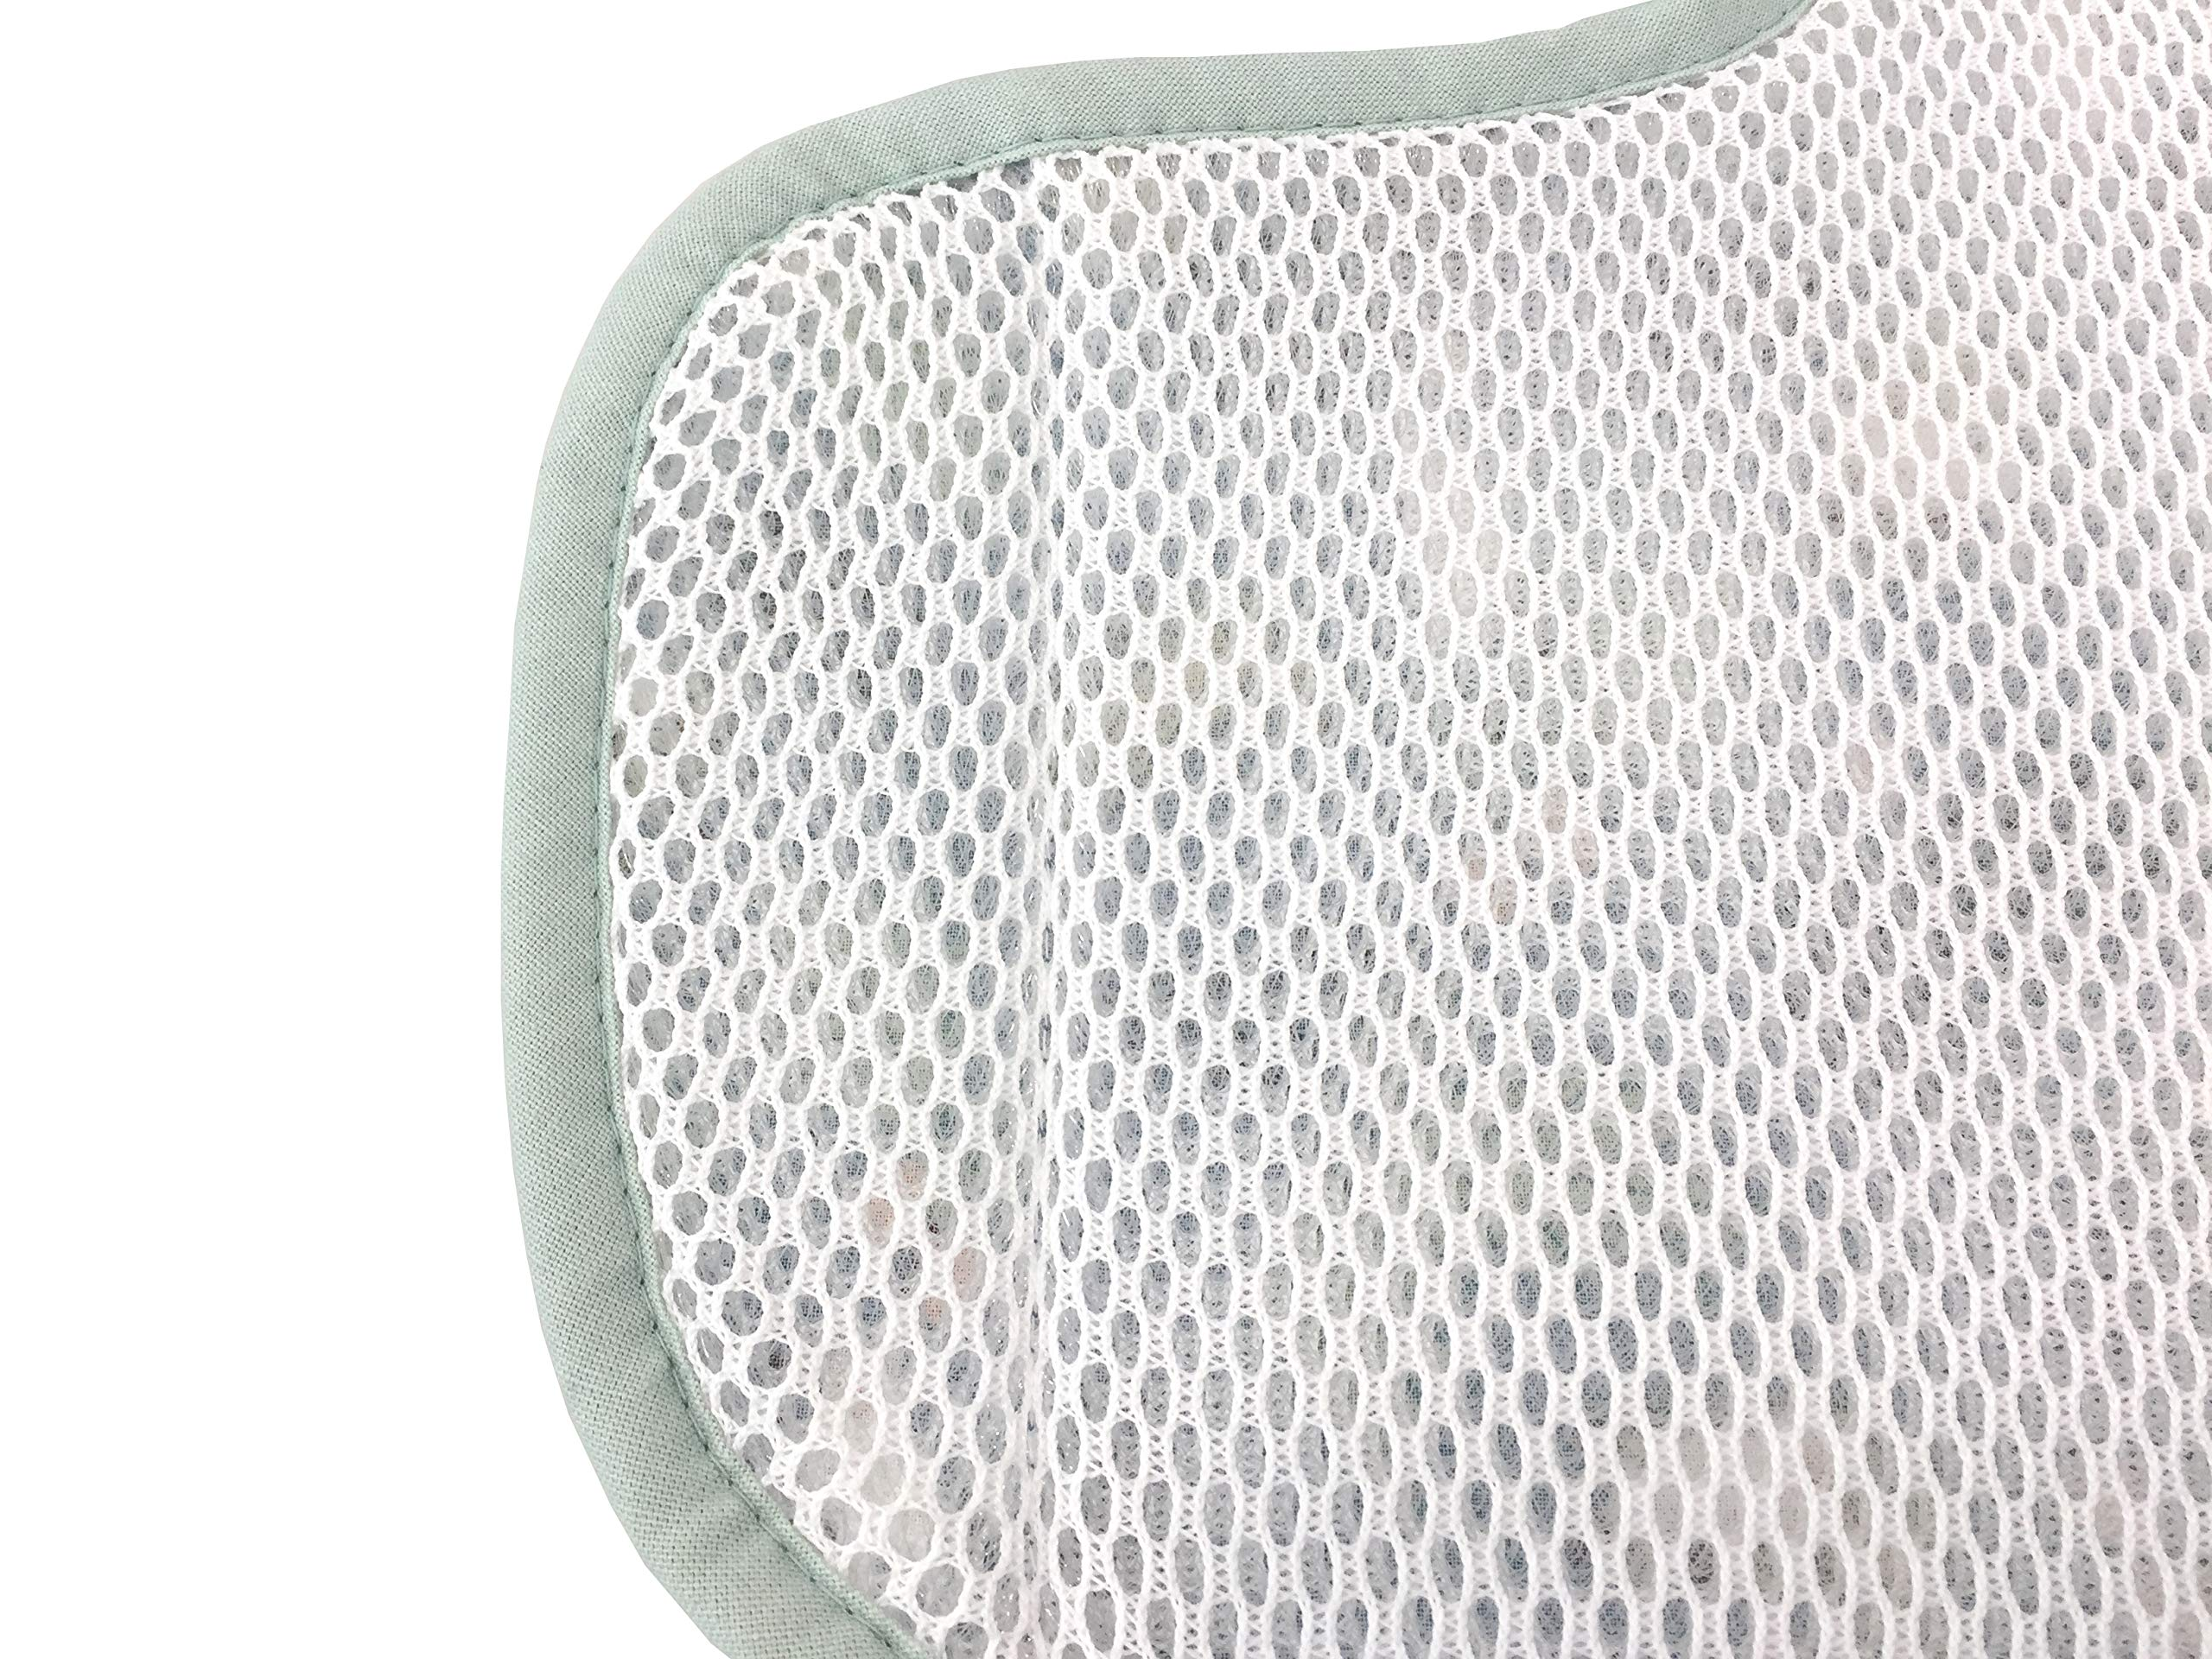 Momnoko 3D Air Mesh Cool Liner for Stroller & Car Seat (Puppy Pattern) by Momnoko (Image #8)